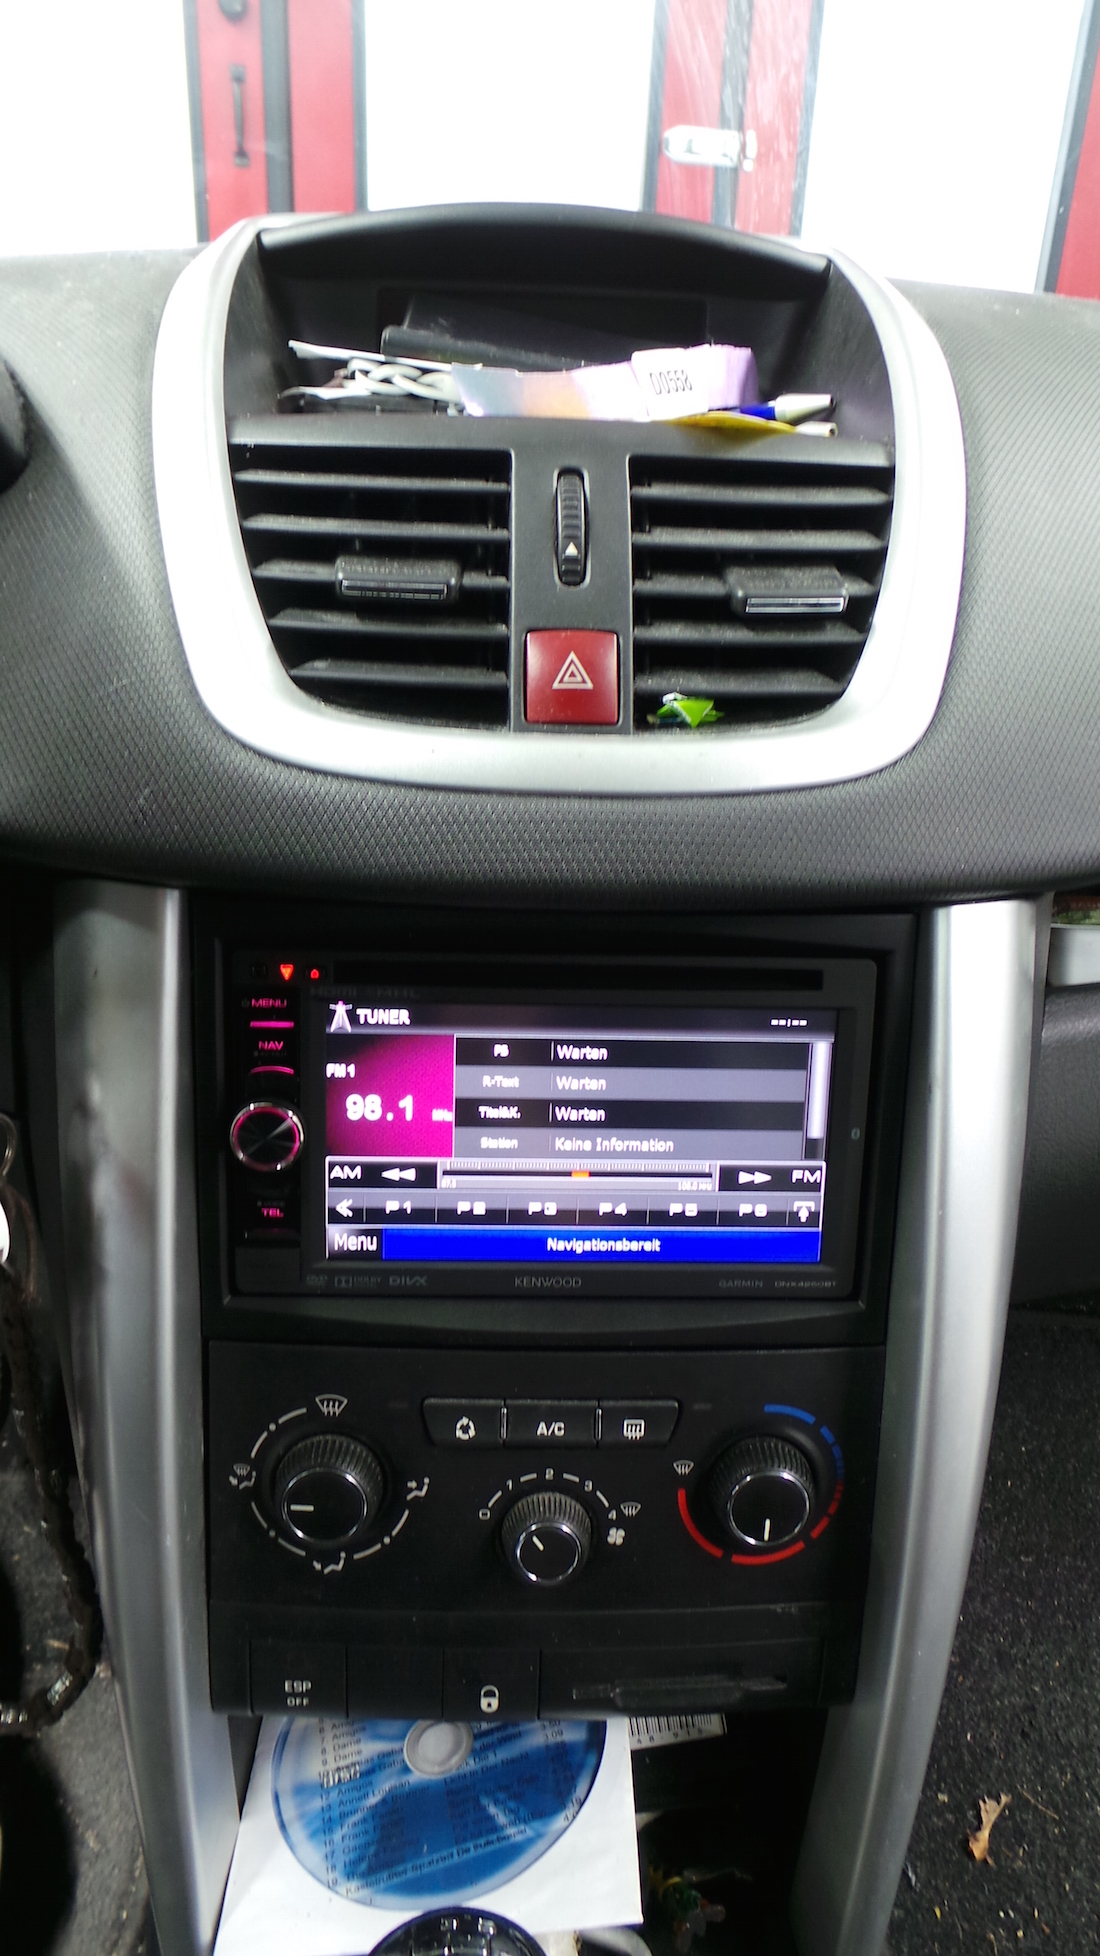 Car bj 2 with girlfriend radio - 1 5